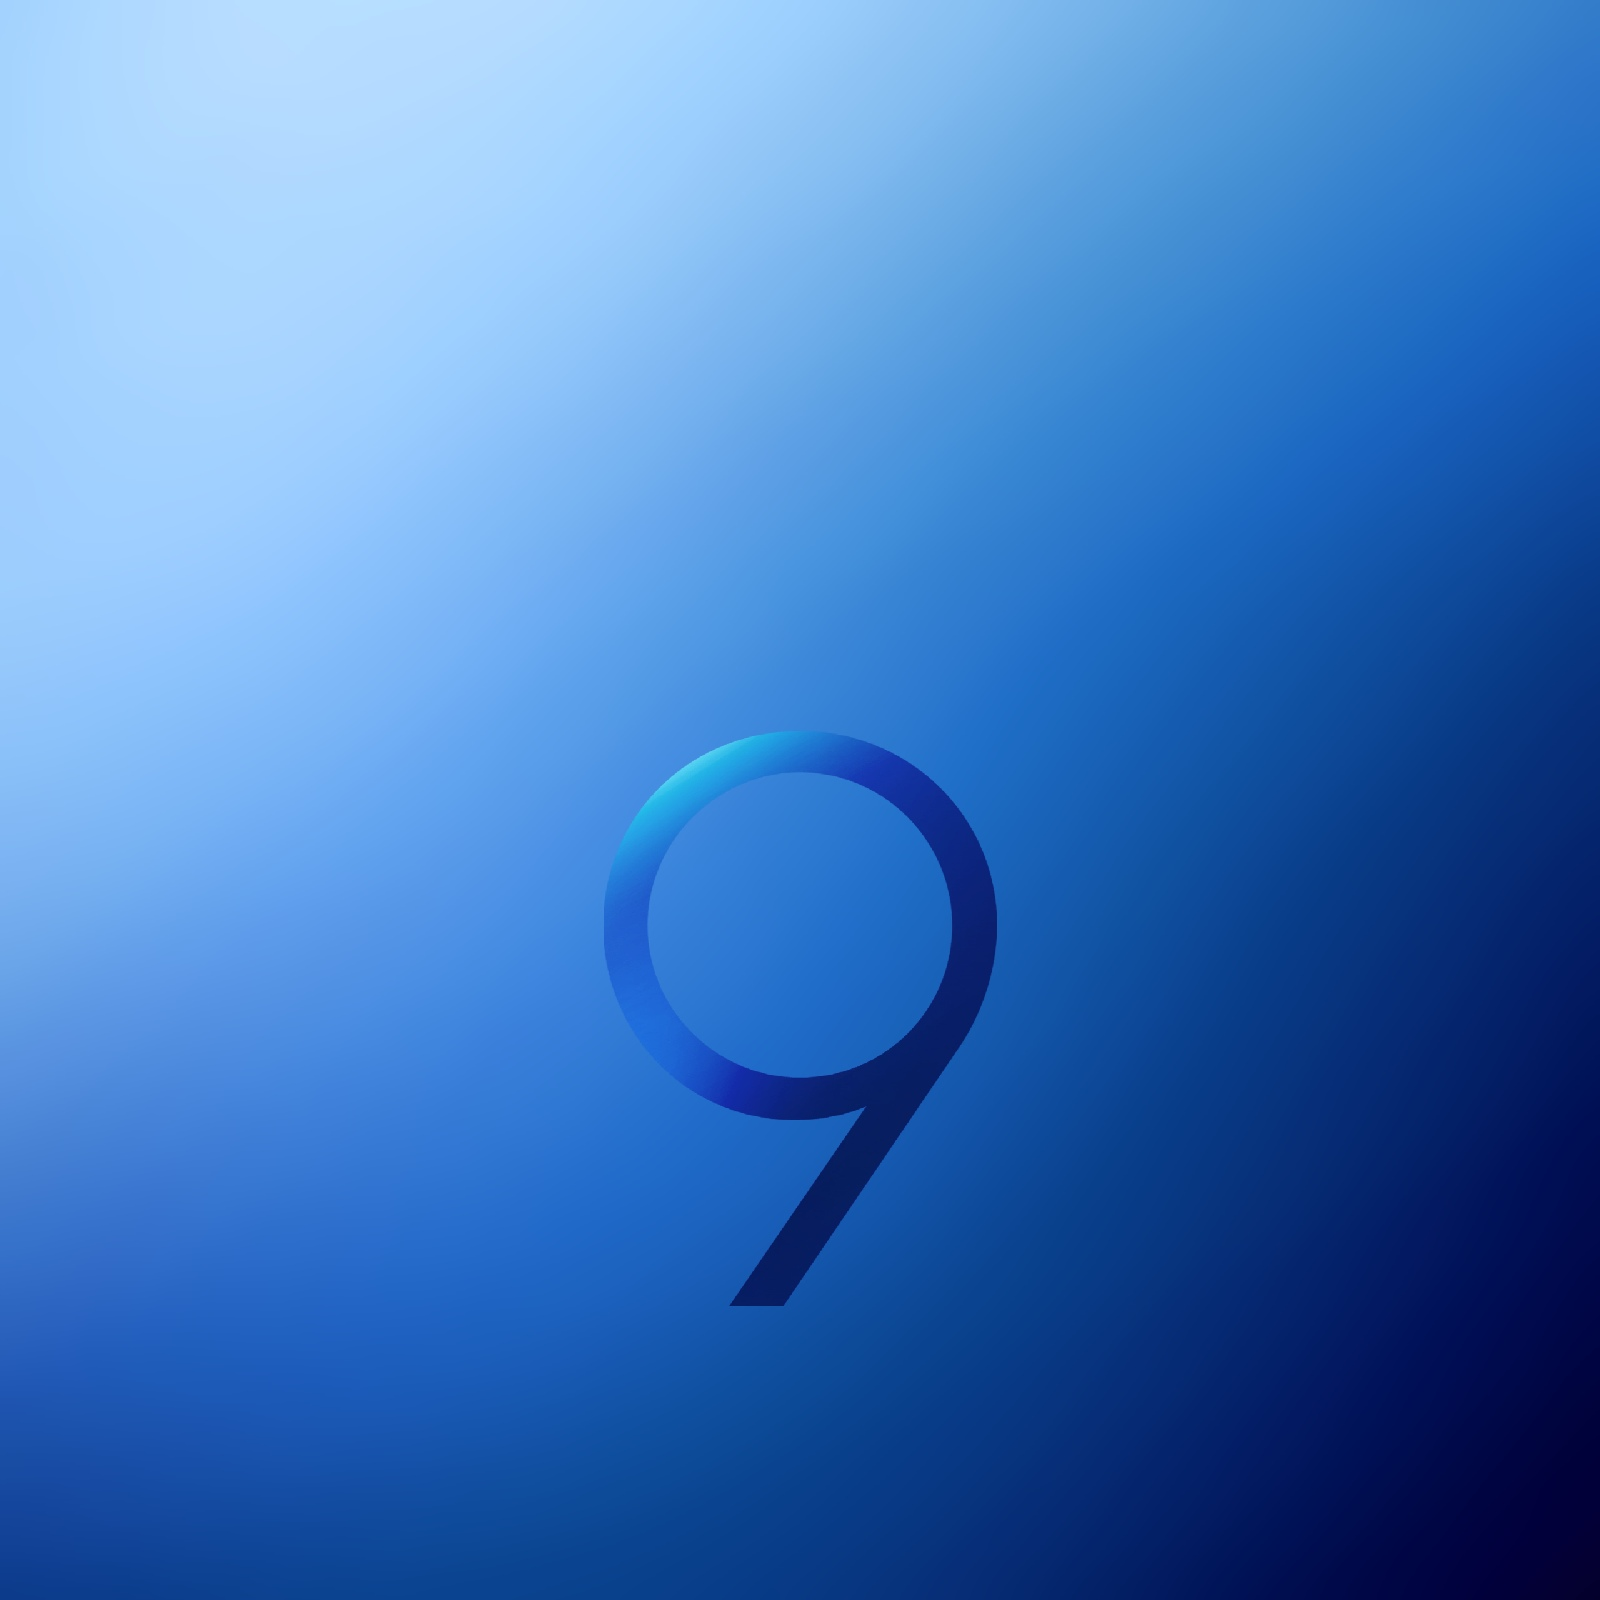 Official Galaxy S9 wallpapers are available for download, grab them